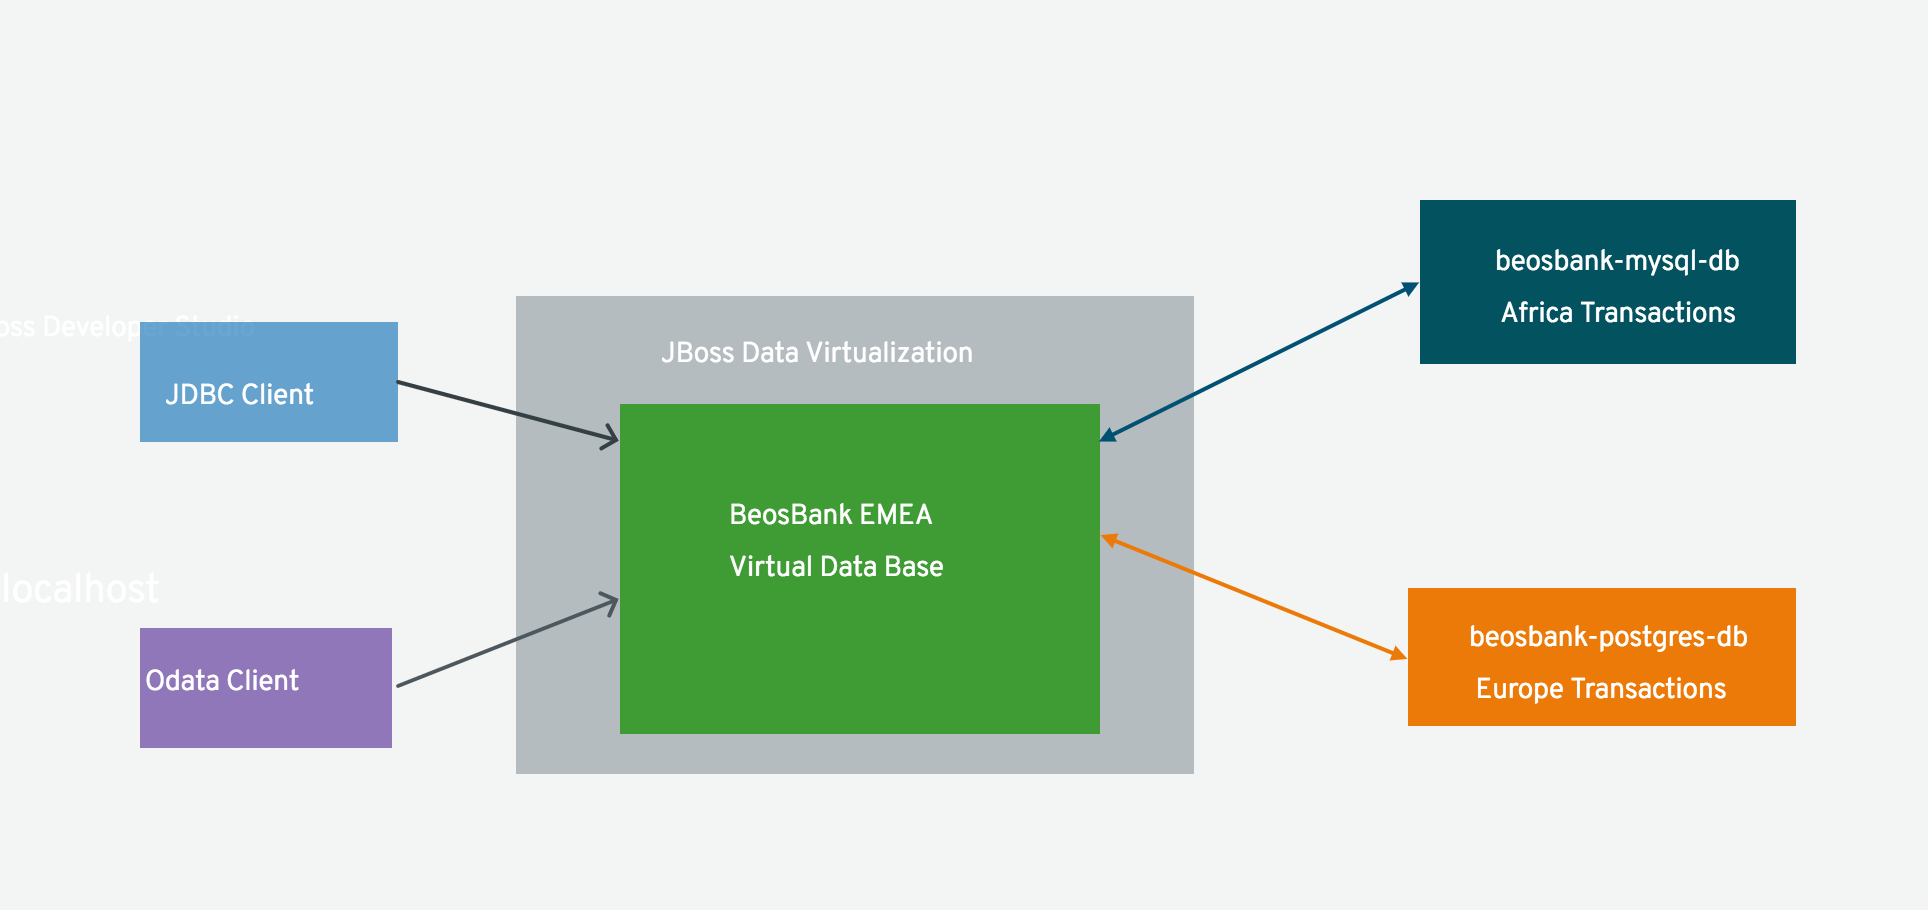 JBoss DataVirtualization: Business Case